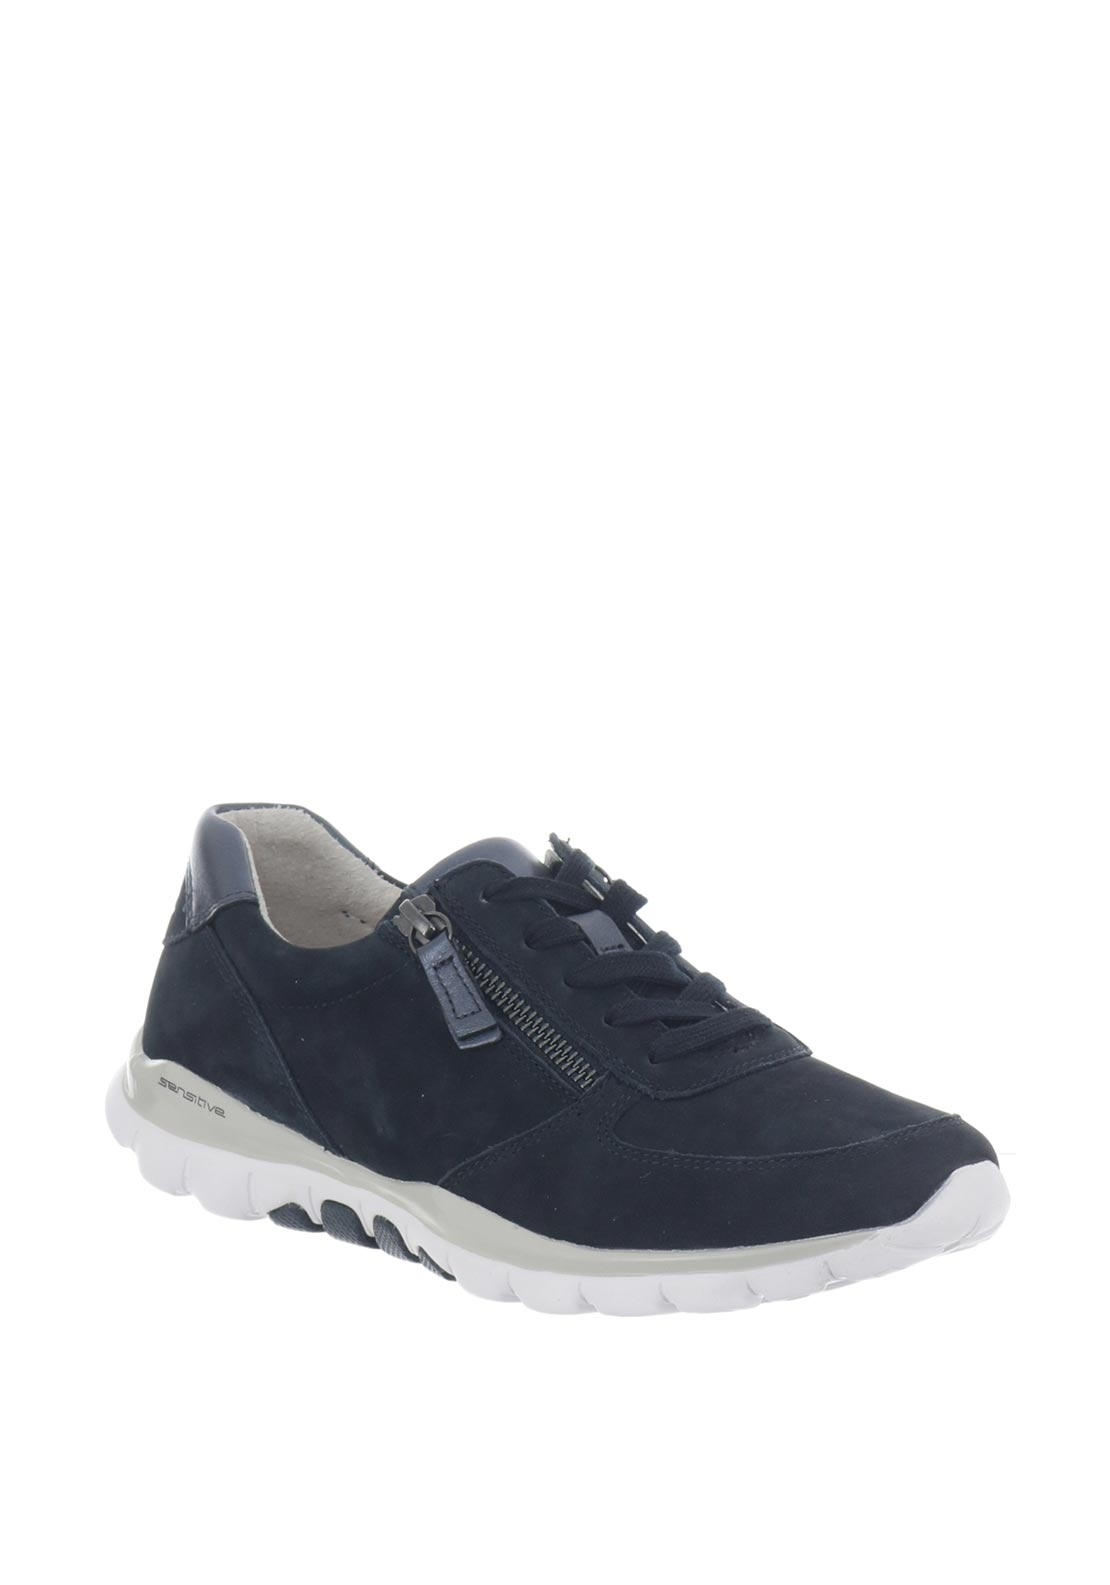 Gabor Rolling Soft Suede Zip Trainers, Navy